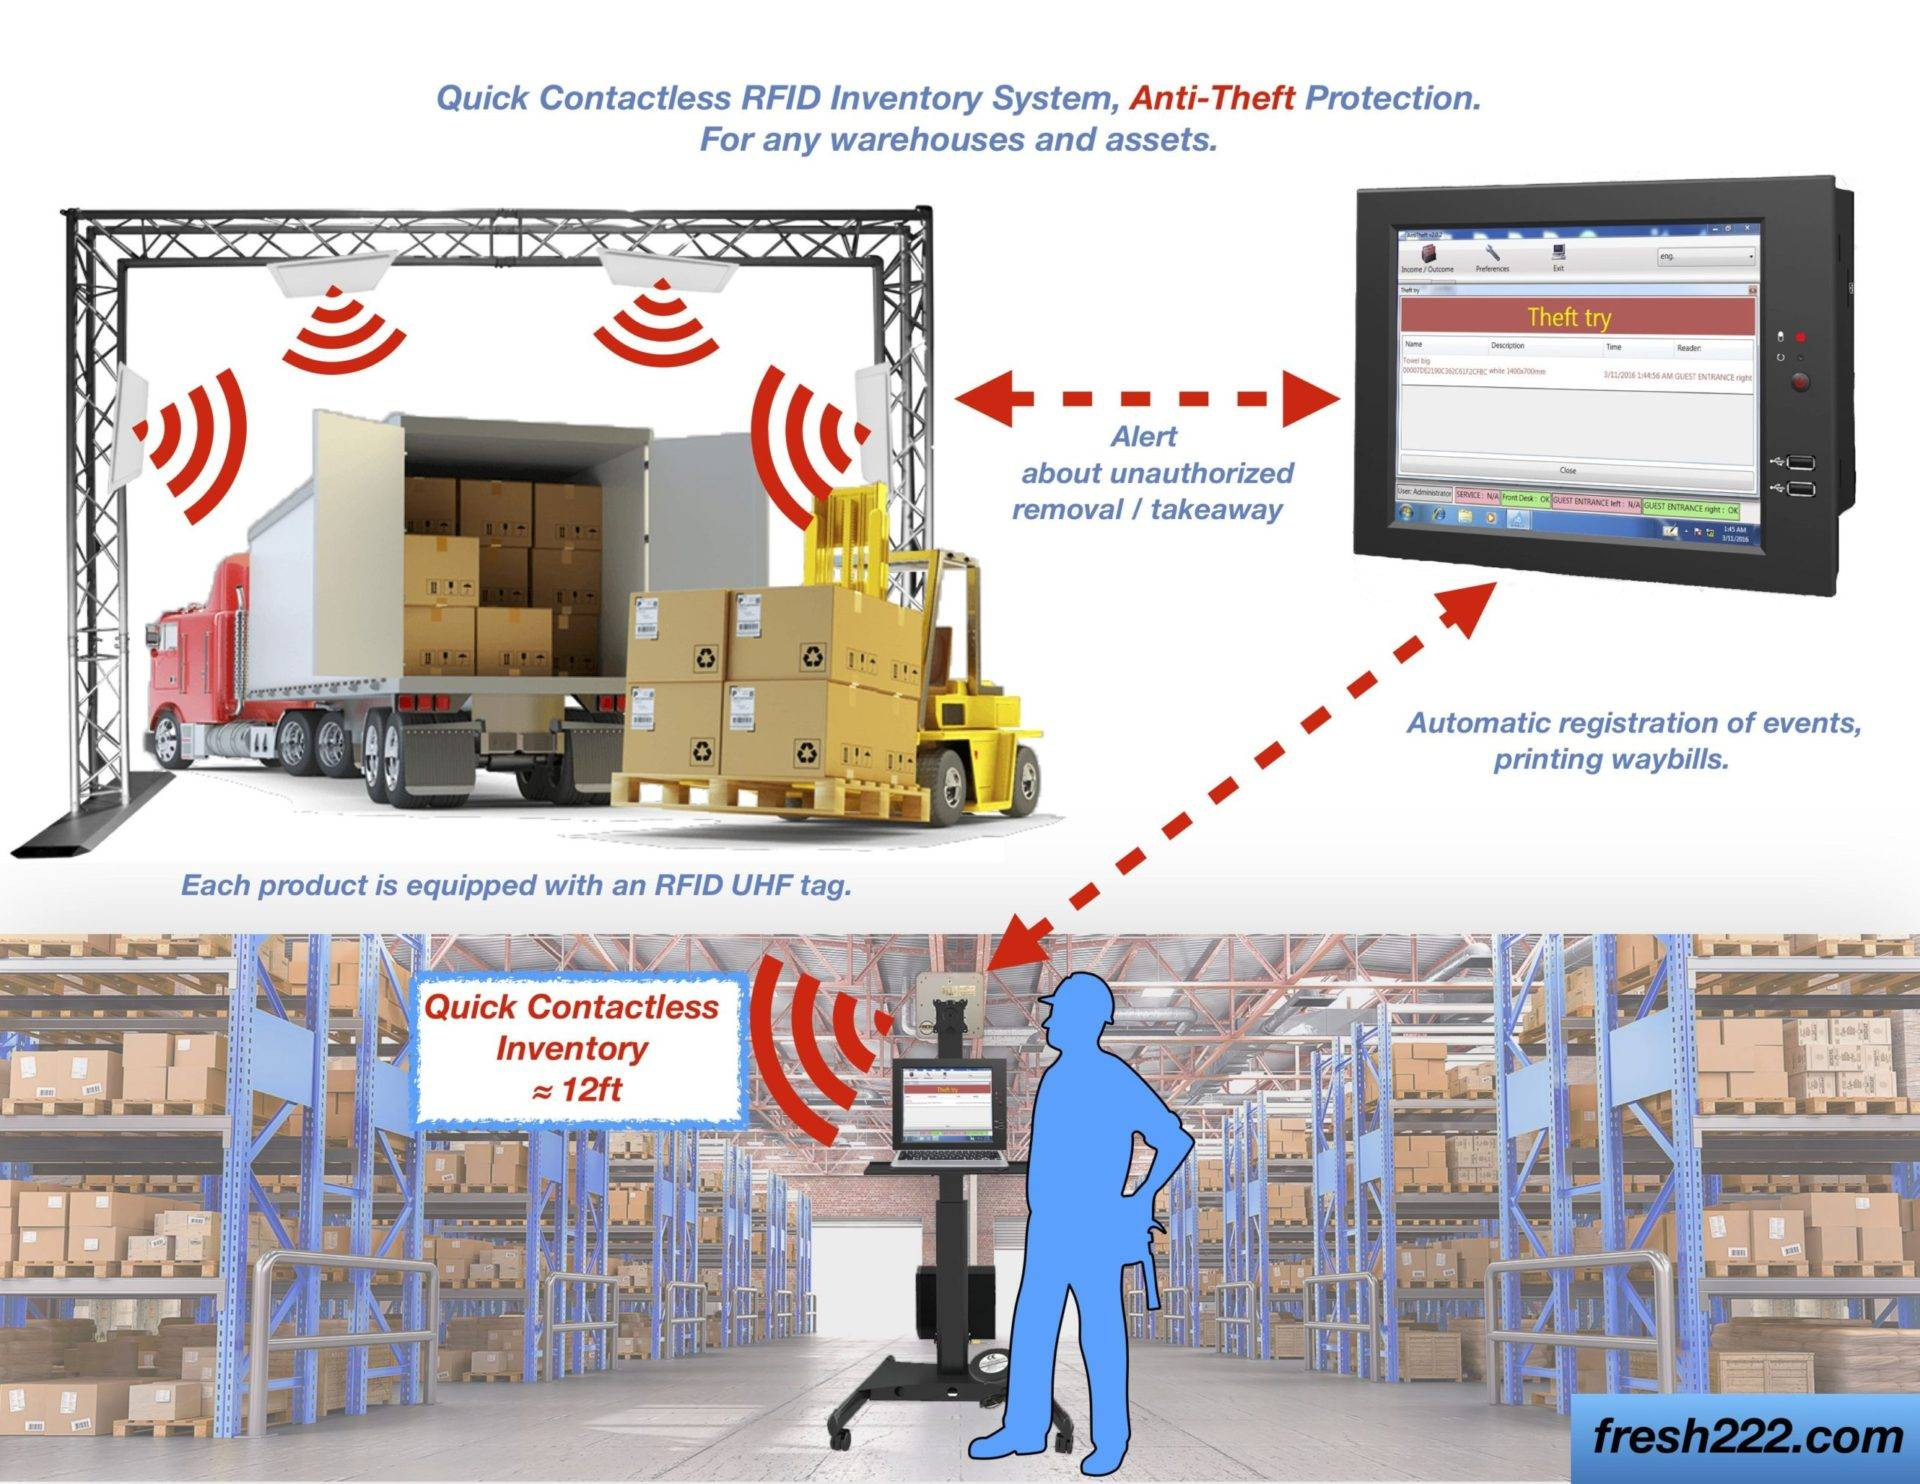 Quick Warehouse RFID Inventory